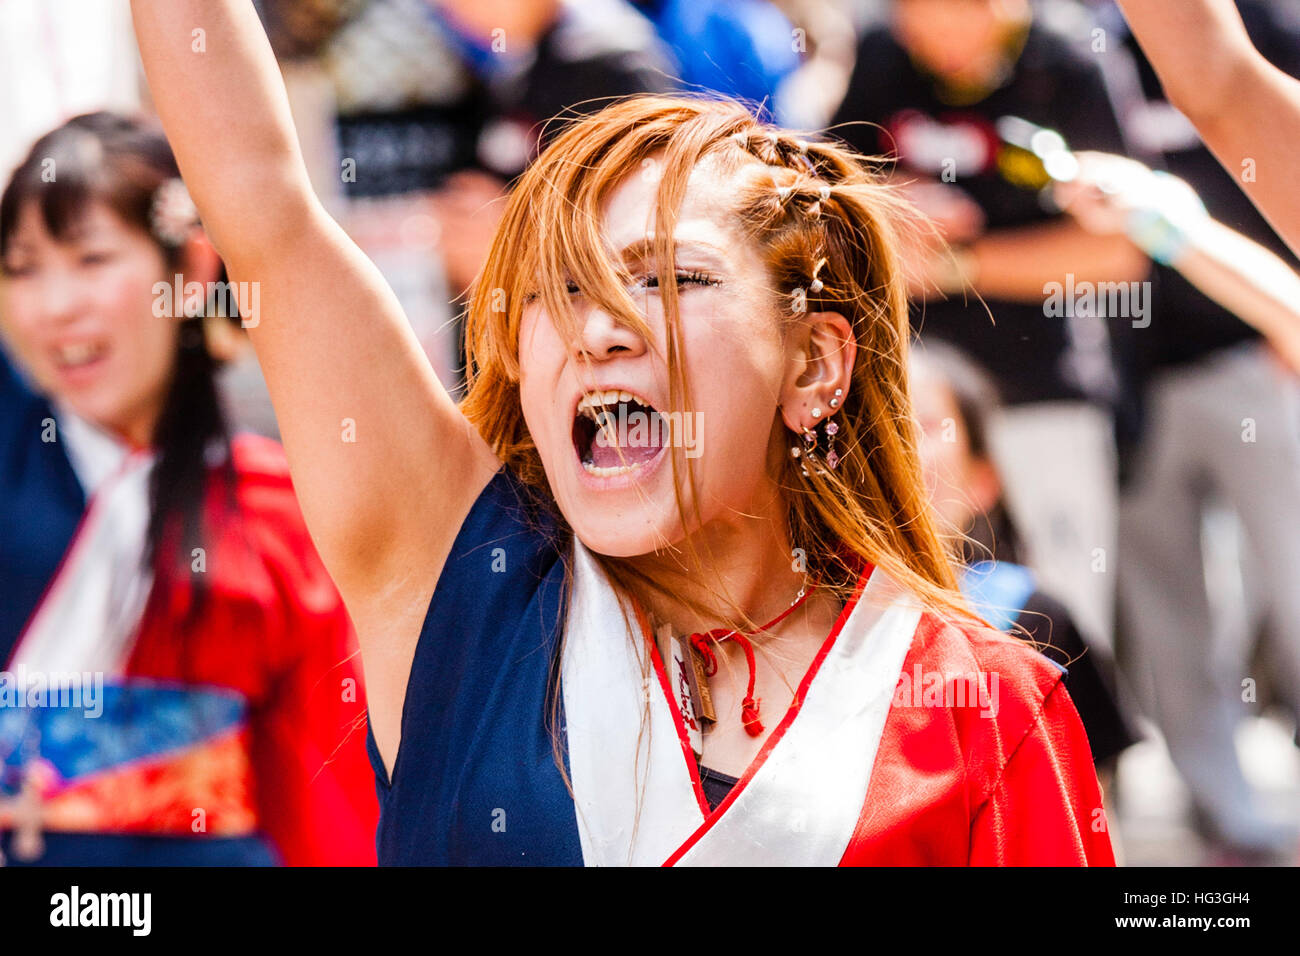 Yosakoi festival. Japanese women dancer with dyed red hair, dancing in city shopping arcade, shouting loudly with - Stock Image